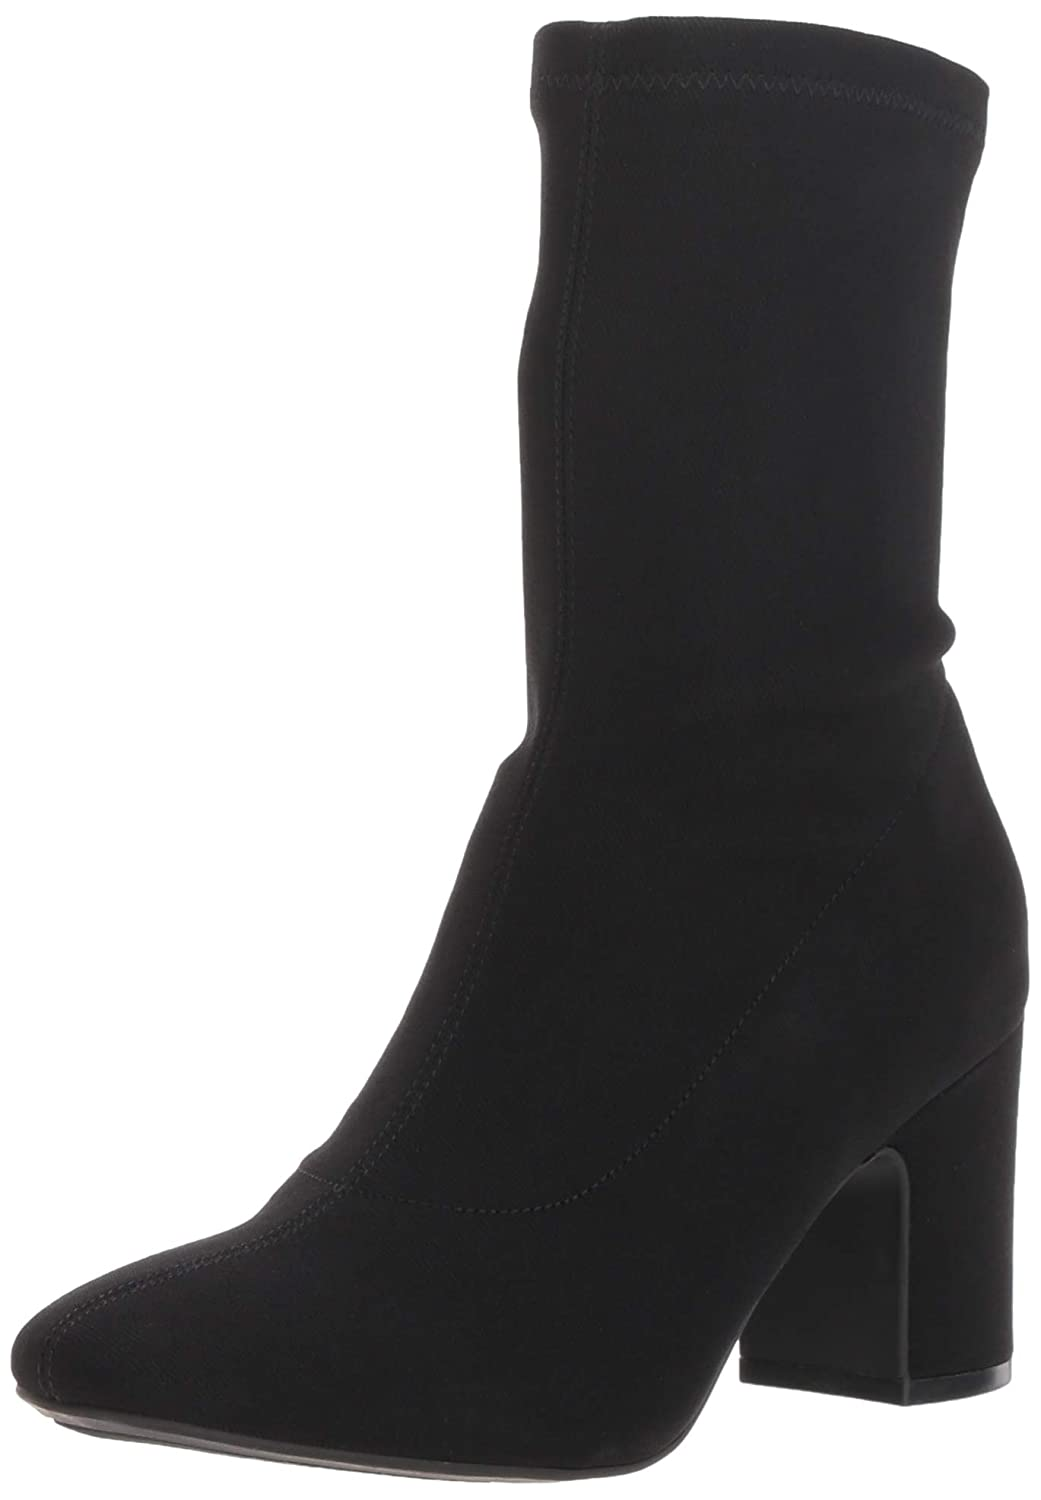 Black Fabric Aerosoles Womens Tall Grass Mid Calf Boot